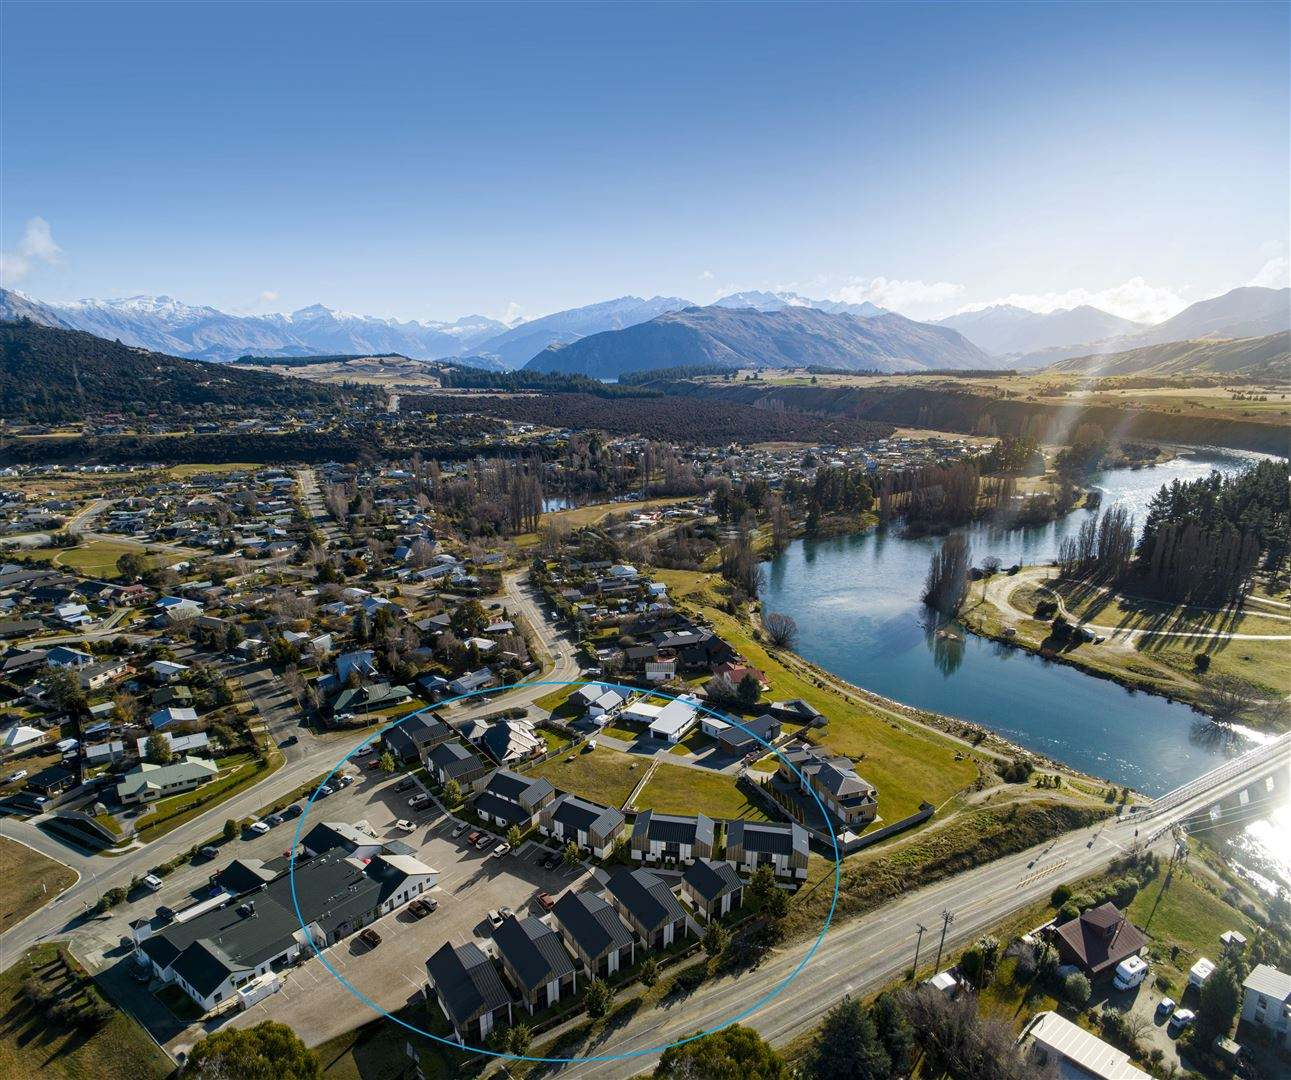 Wanaka 2房 Riverside Townhouses - From $399,000+GST (if any)